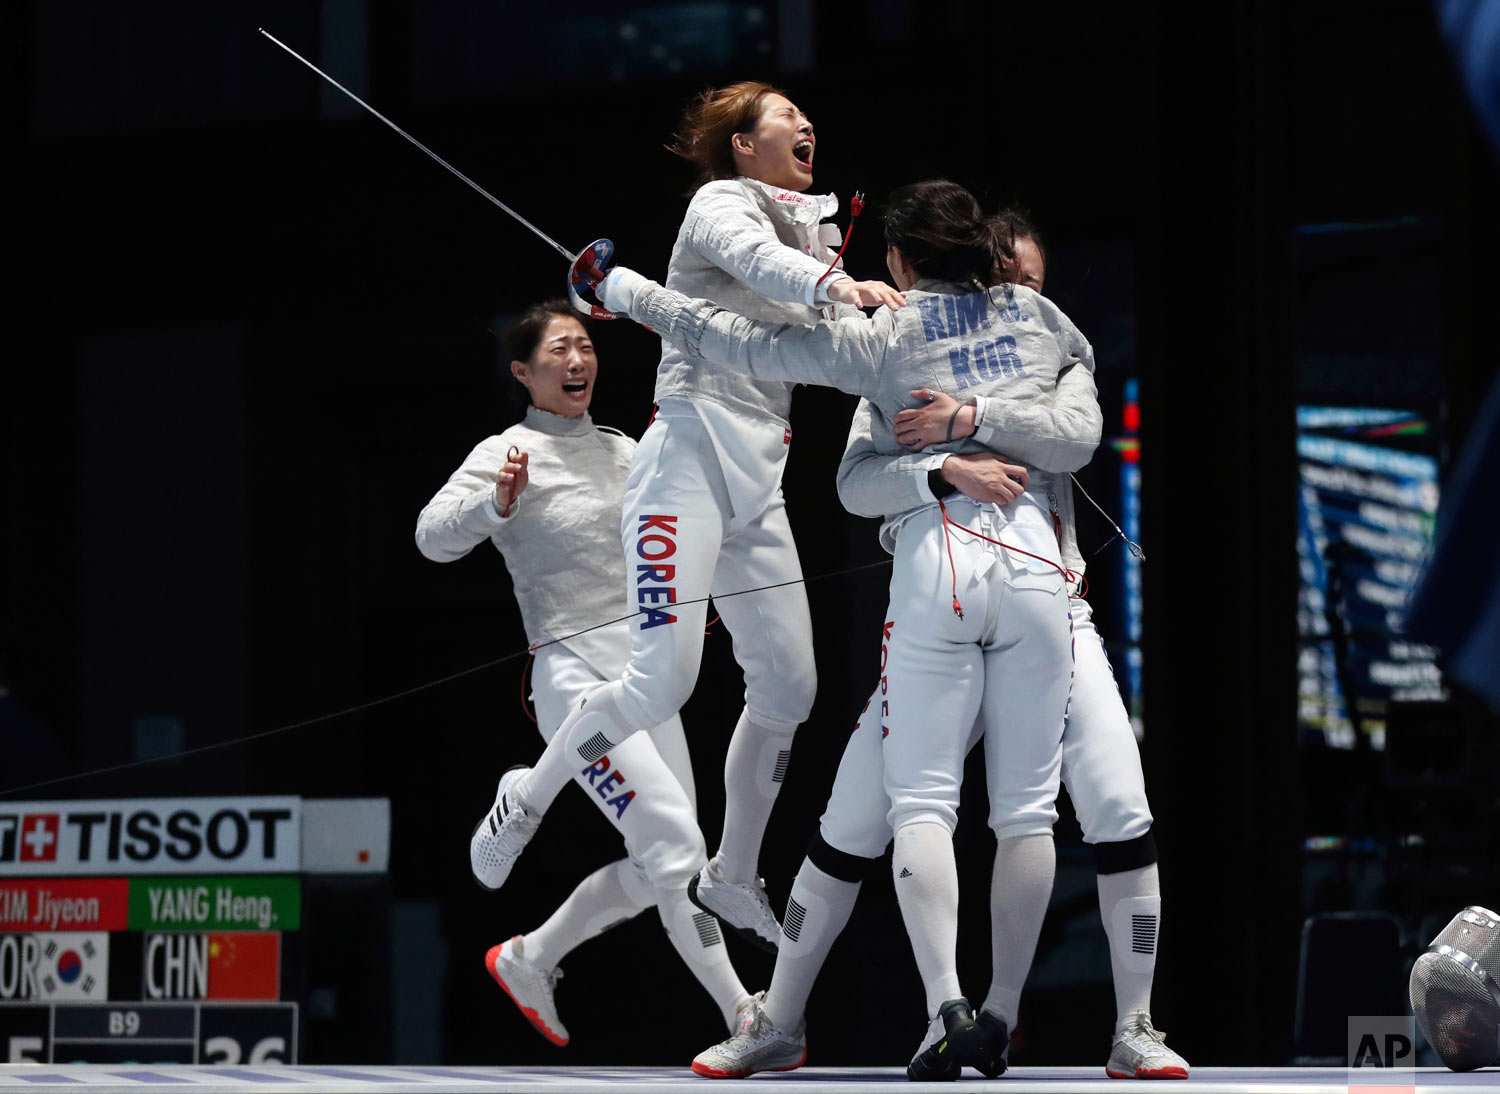 South Korea team members celebrate after defeating China during their women's sabre team finals fencing match at the 18th Asian Games in Jakarta, Indonesia, Wednesday, Aug. 22, 2018. (AP Photo/Achmad Ibrahim)